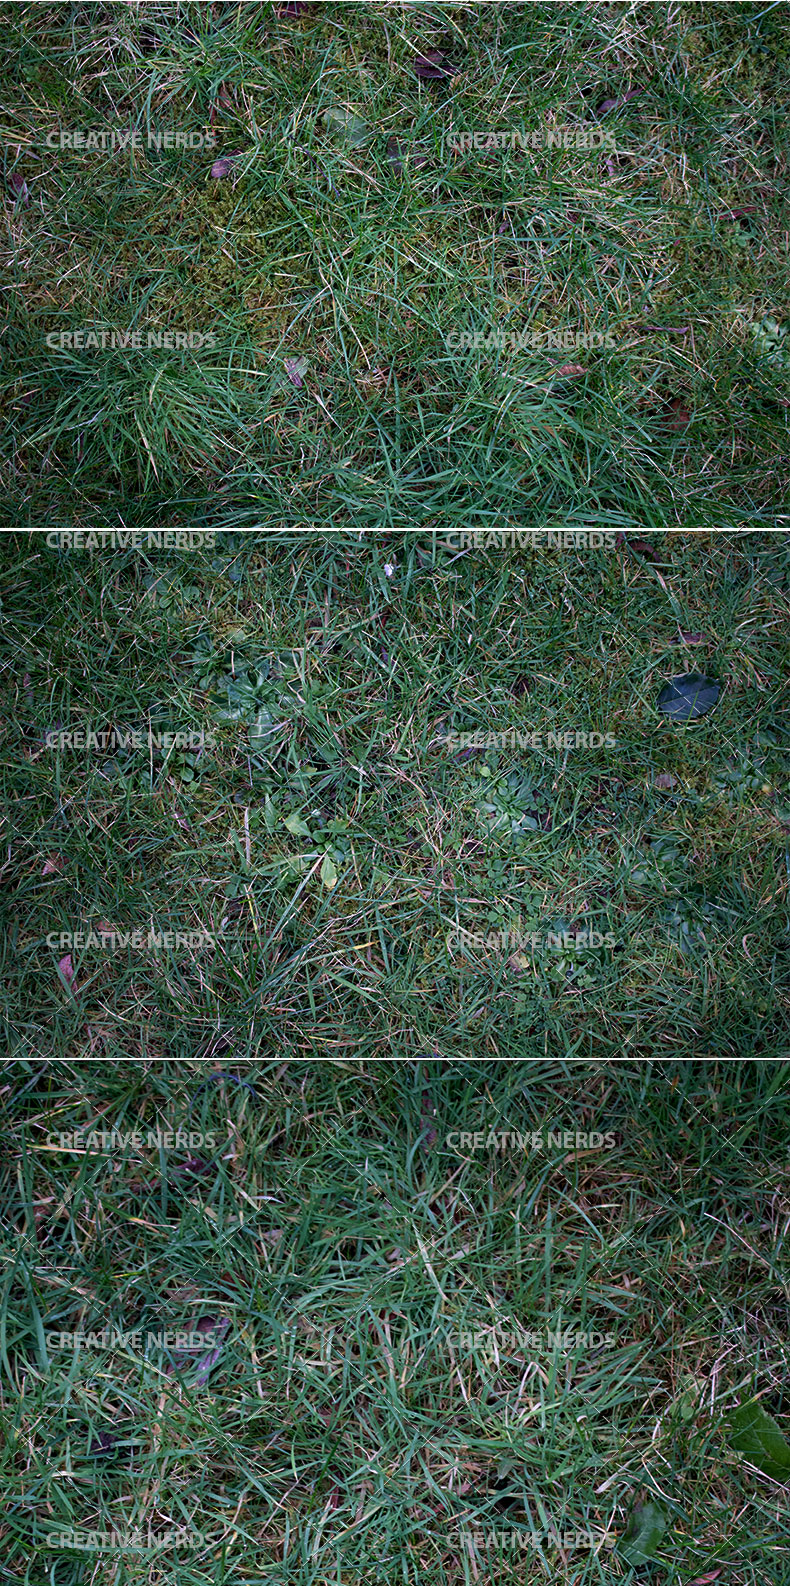 long grass texture preview Premium members: 5 New awseome premium design resources